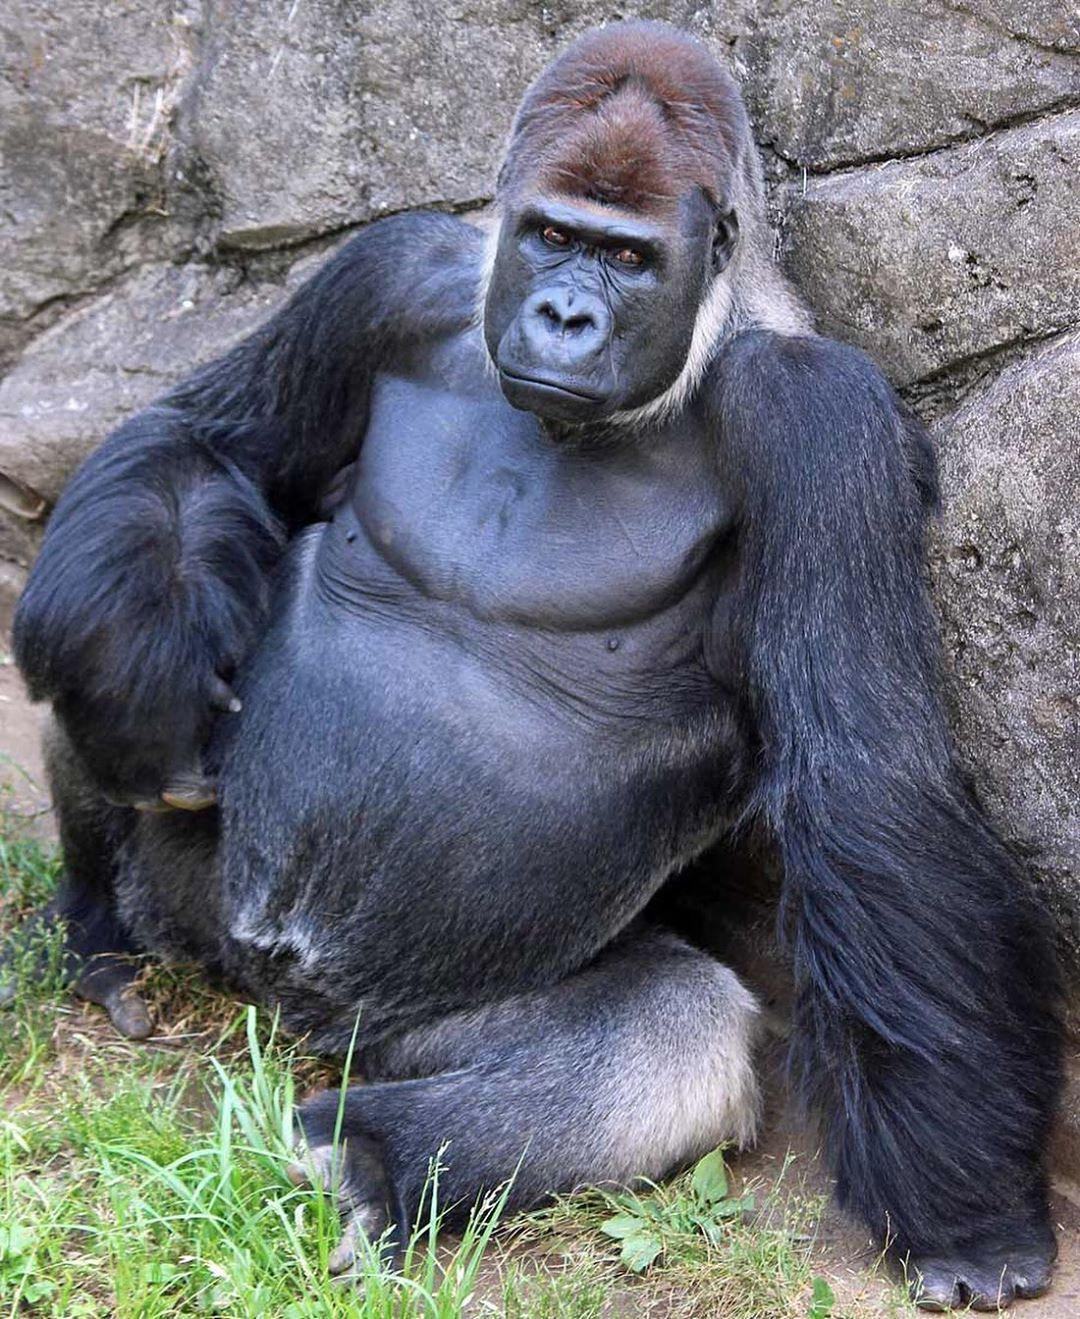 Sexy Gorilla In Japan Makes Women Swoon The Mercury News